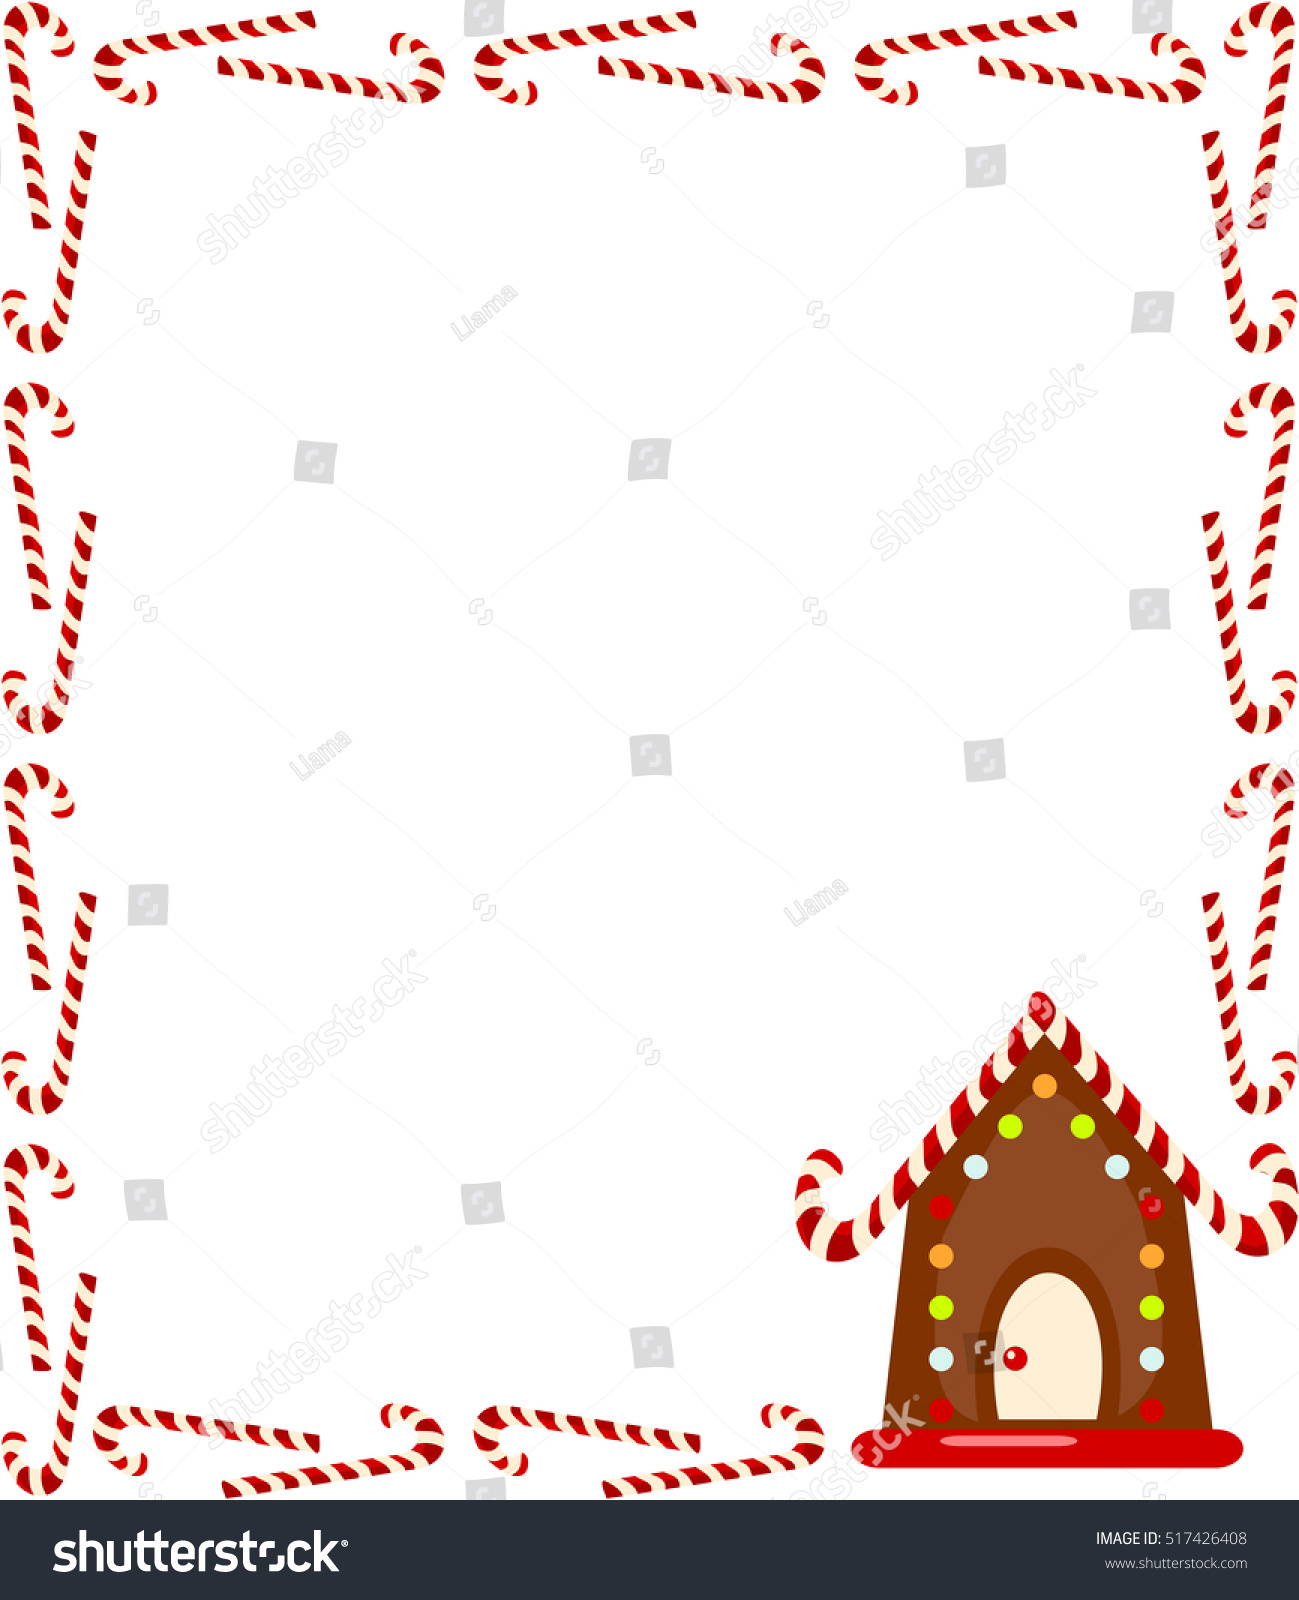 Large Rectangular Frame Candy Canes Gingerbread Stock ...